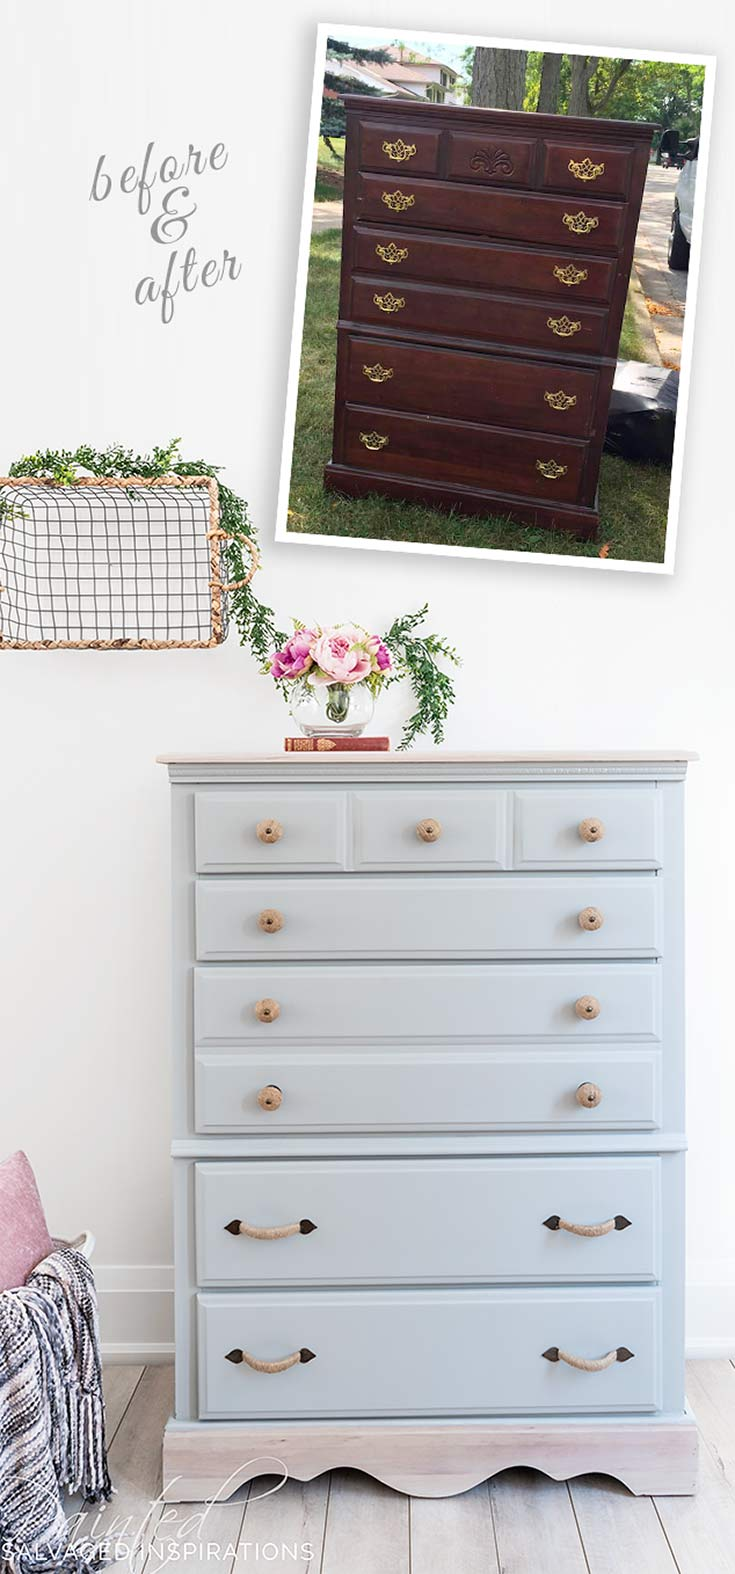 Before and After DIY Salvaged Dresser Makeover